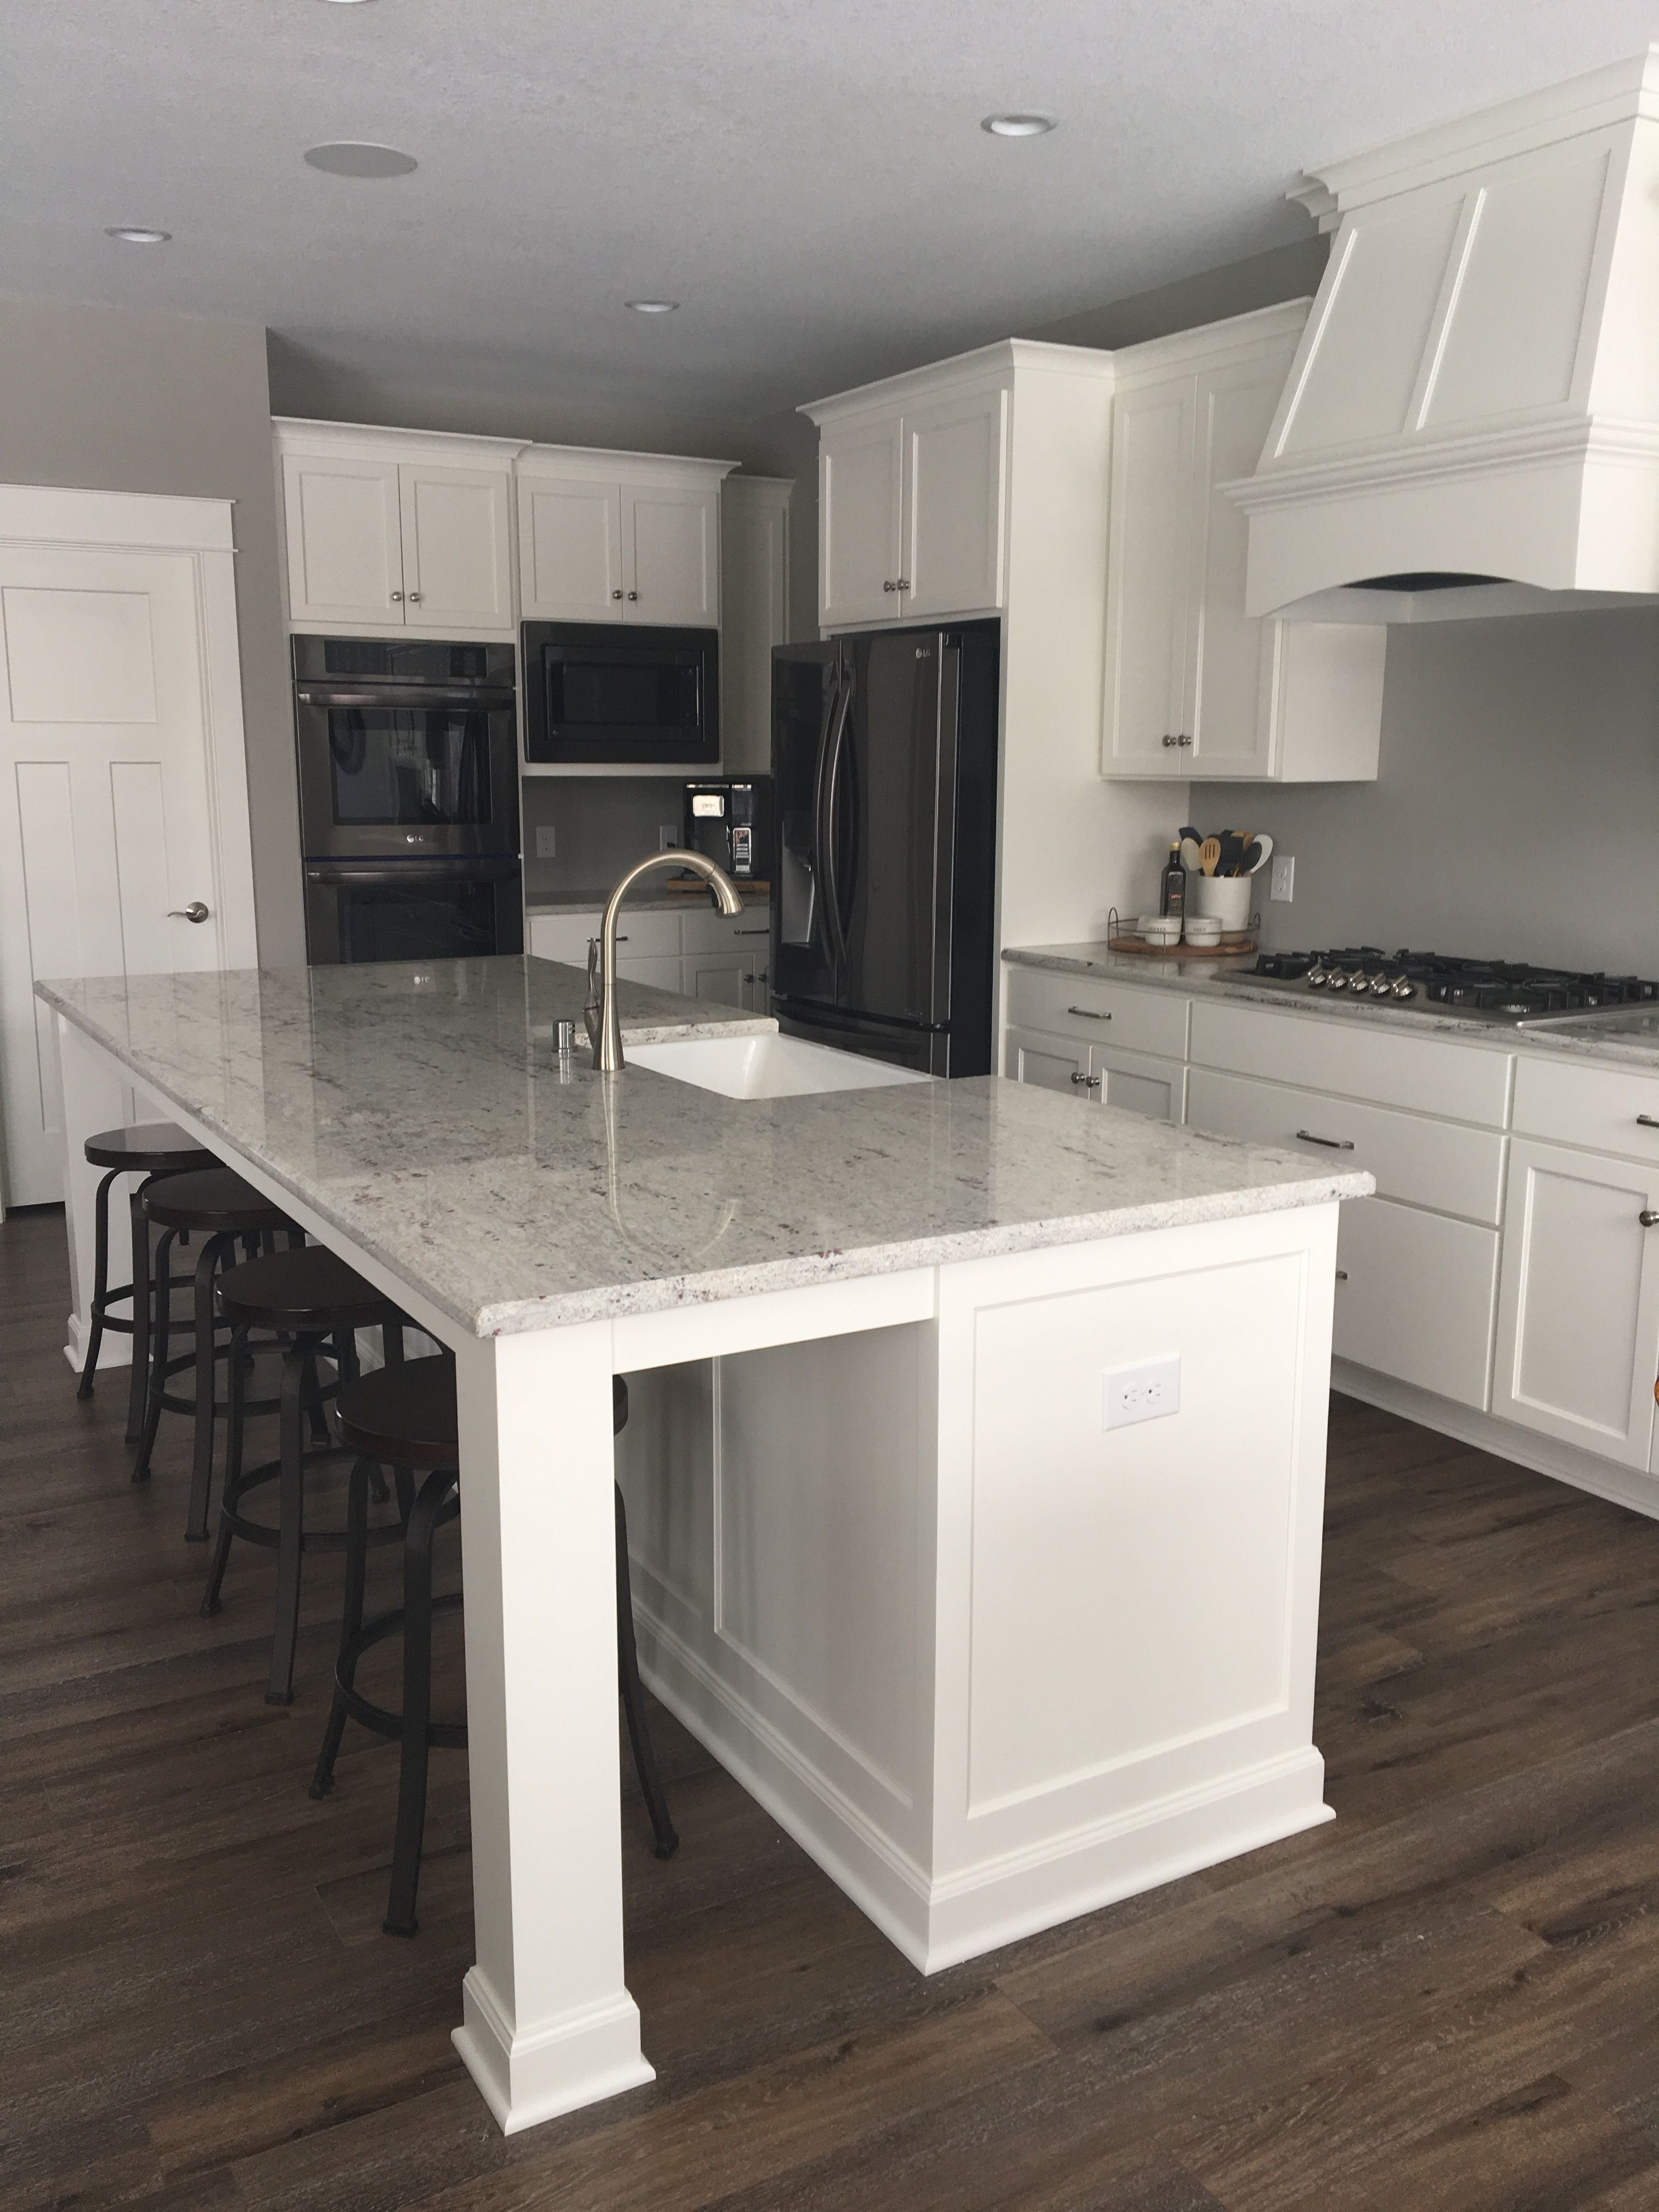 This White Kitchen Is Classic Yet Modern And Features Crisp White Cabinetry An Oversized Fu Black Appliances Kitchen White Kitchen Appliances White Cabinetry